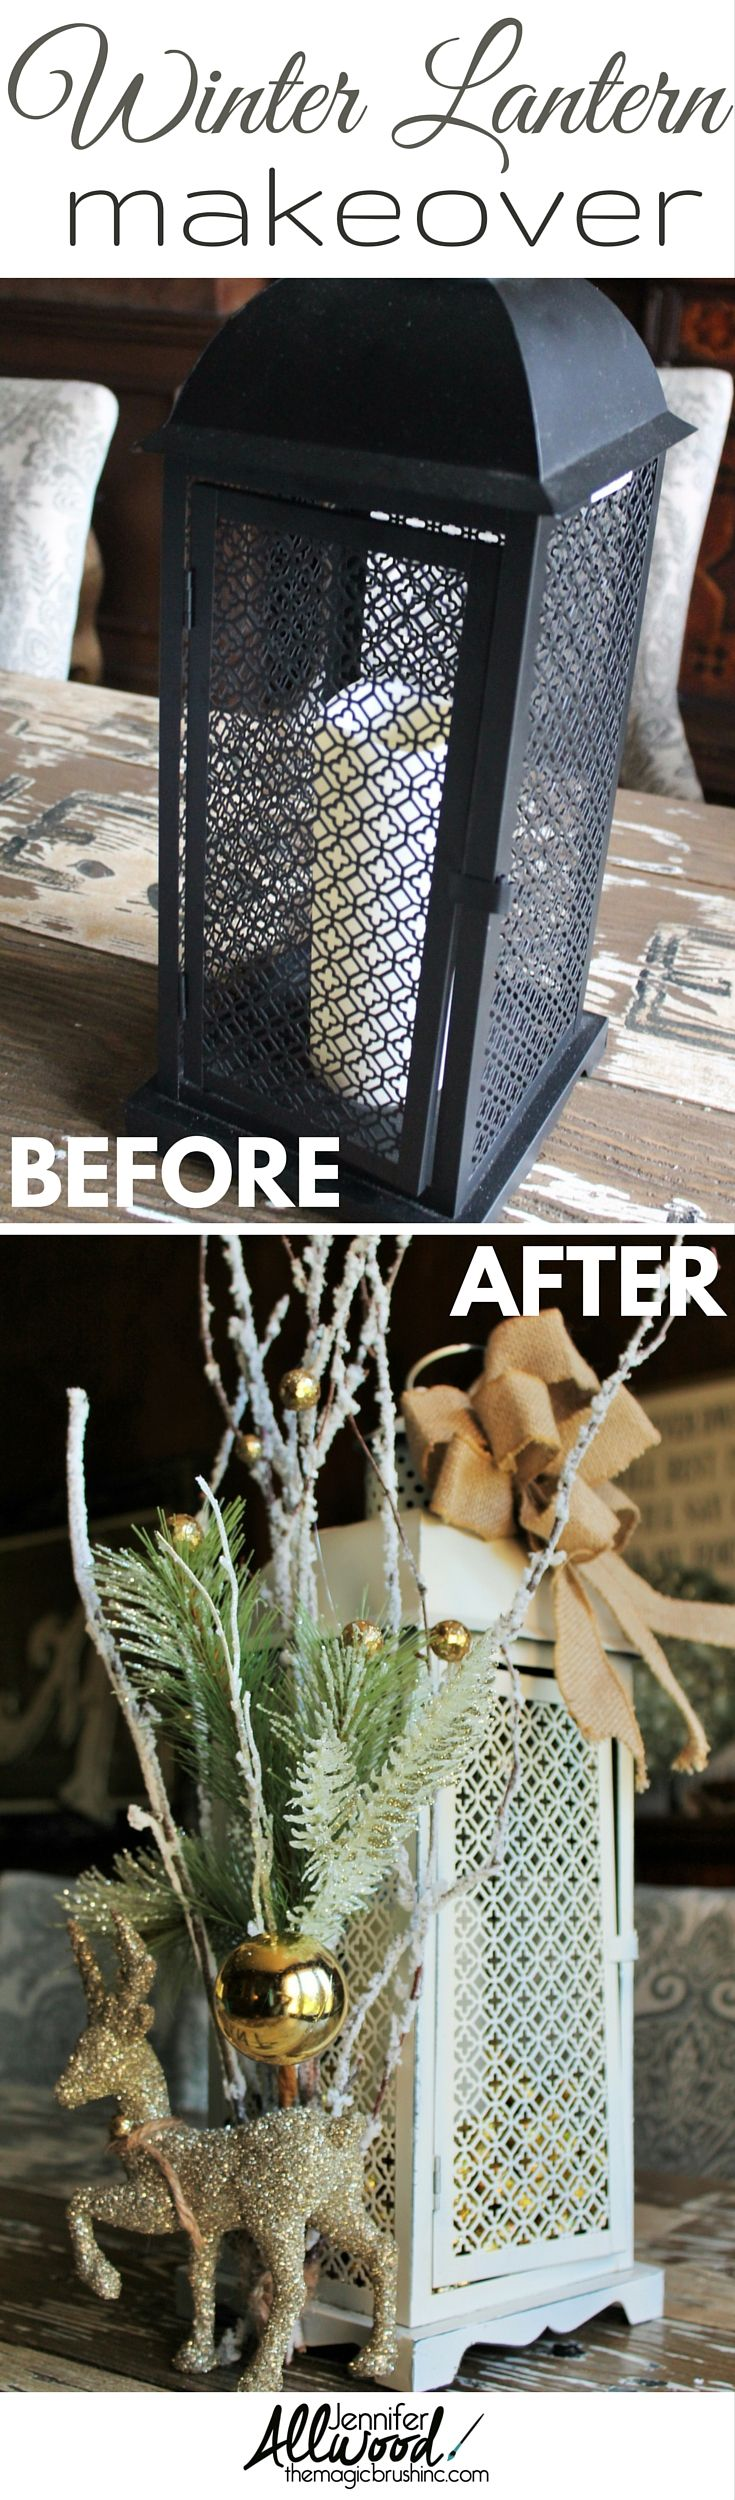 How to's : Find a Christmas lantern on clearance and decorate it for winter! Lantern decorating is a fun way to take something that is cute and make it gorgeous!!! More painting tips and DIY projects at theMagicBrushinc.com